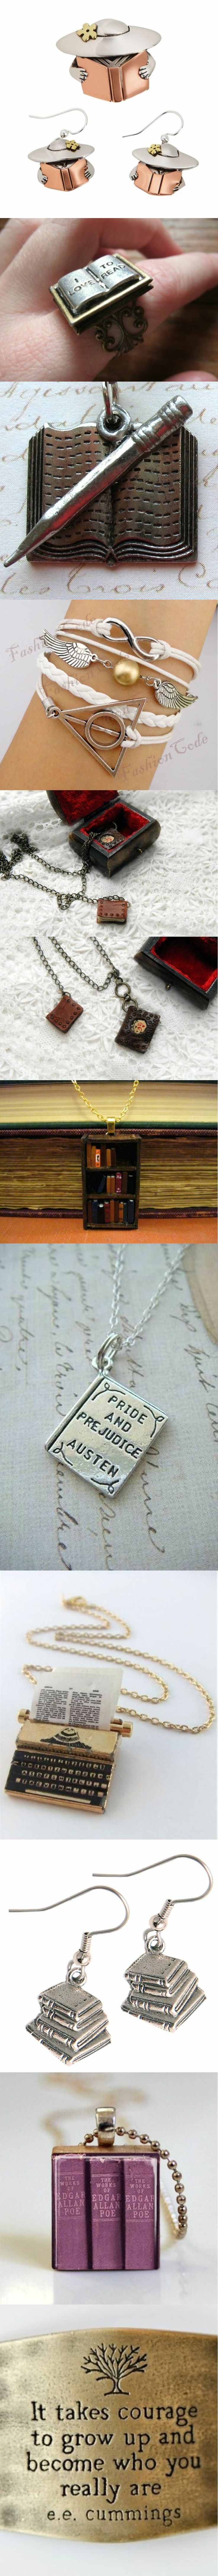 Jewelry inspired by the book  visit: http://pinterest.com/okknihovna/jewelry-inspired-by-the-book-sperky-inspirovane-kn/